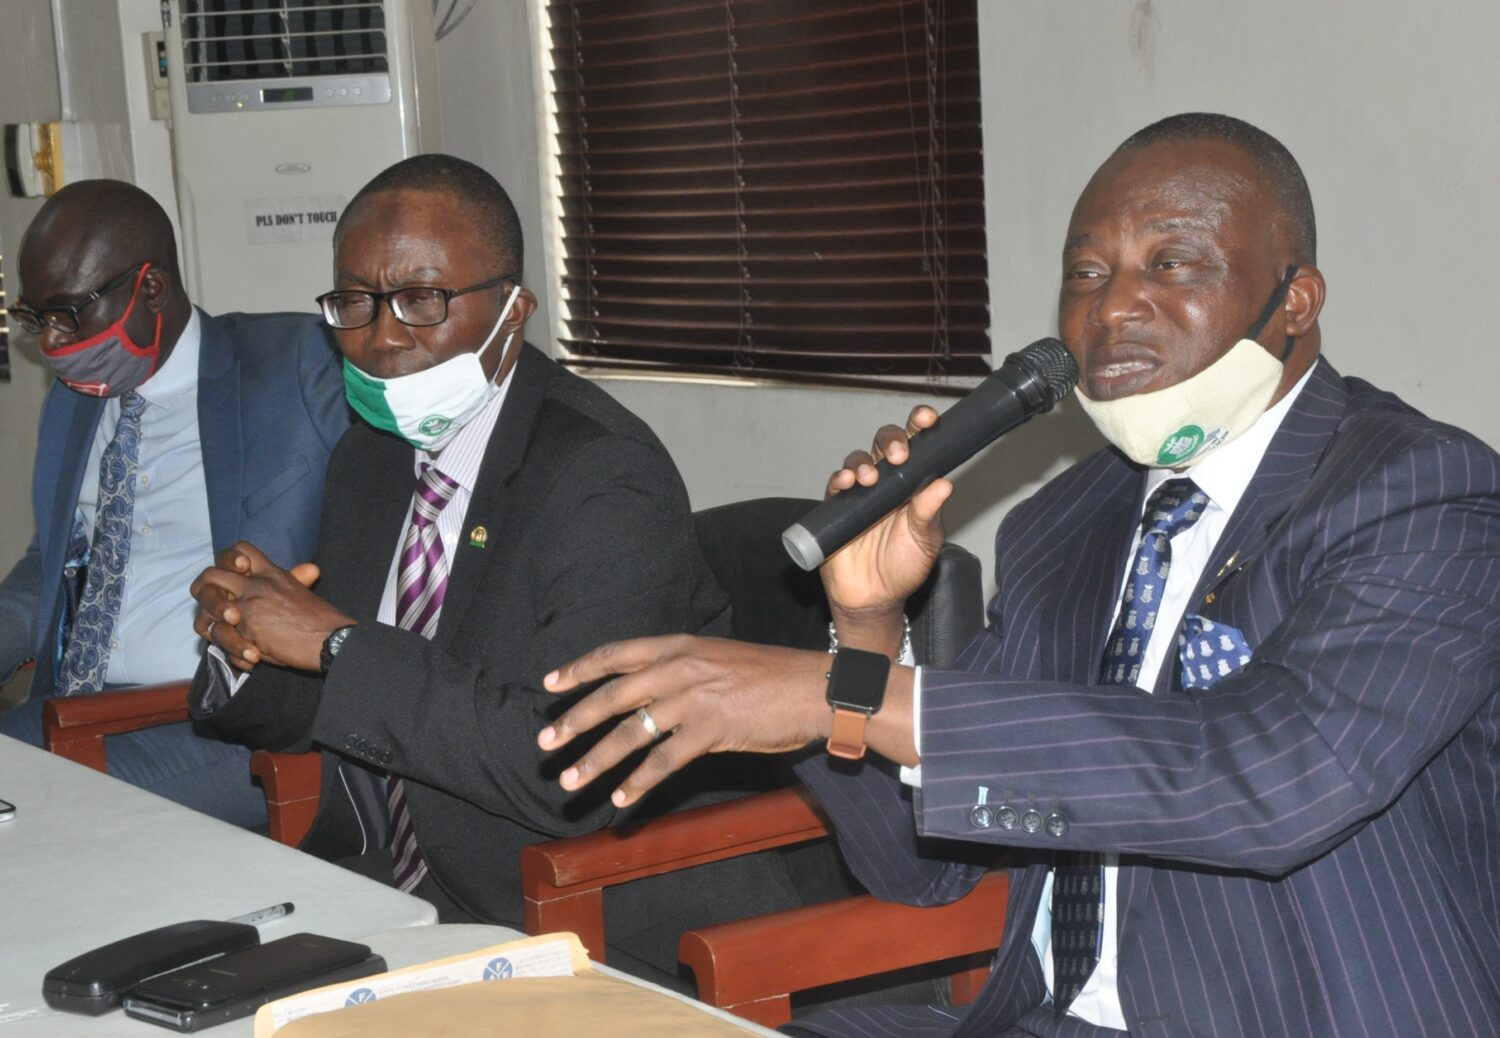 (R-l) Tunde Oguntade, Vice President/representative of President, Nigerian Council of Registered Insurance Brokers (NCRIB); Fatai Adegbenro, Executive Secretary/CEO, NCRIB, and Tope Adaramola, Assistant Executive Secretary, during the institute's presentation at the annual general meeting of the National Association of Insurance and Pension Correspondents in Lagos on Wednesday. 29/7/2020